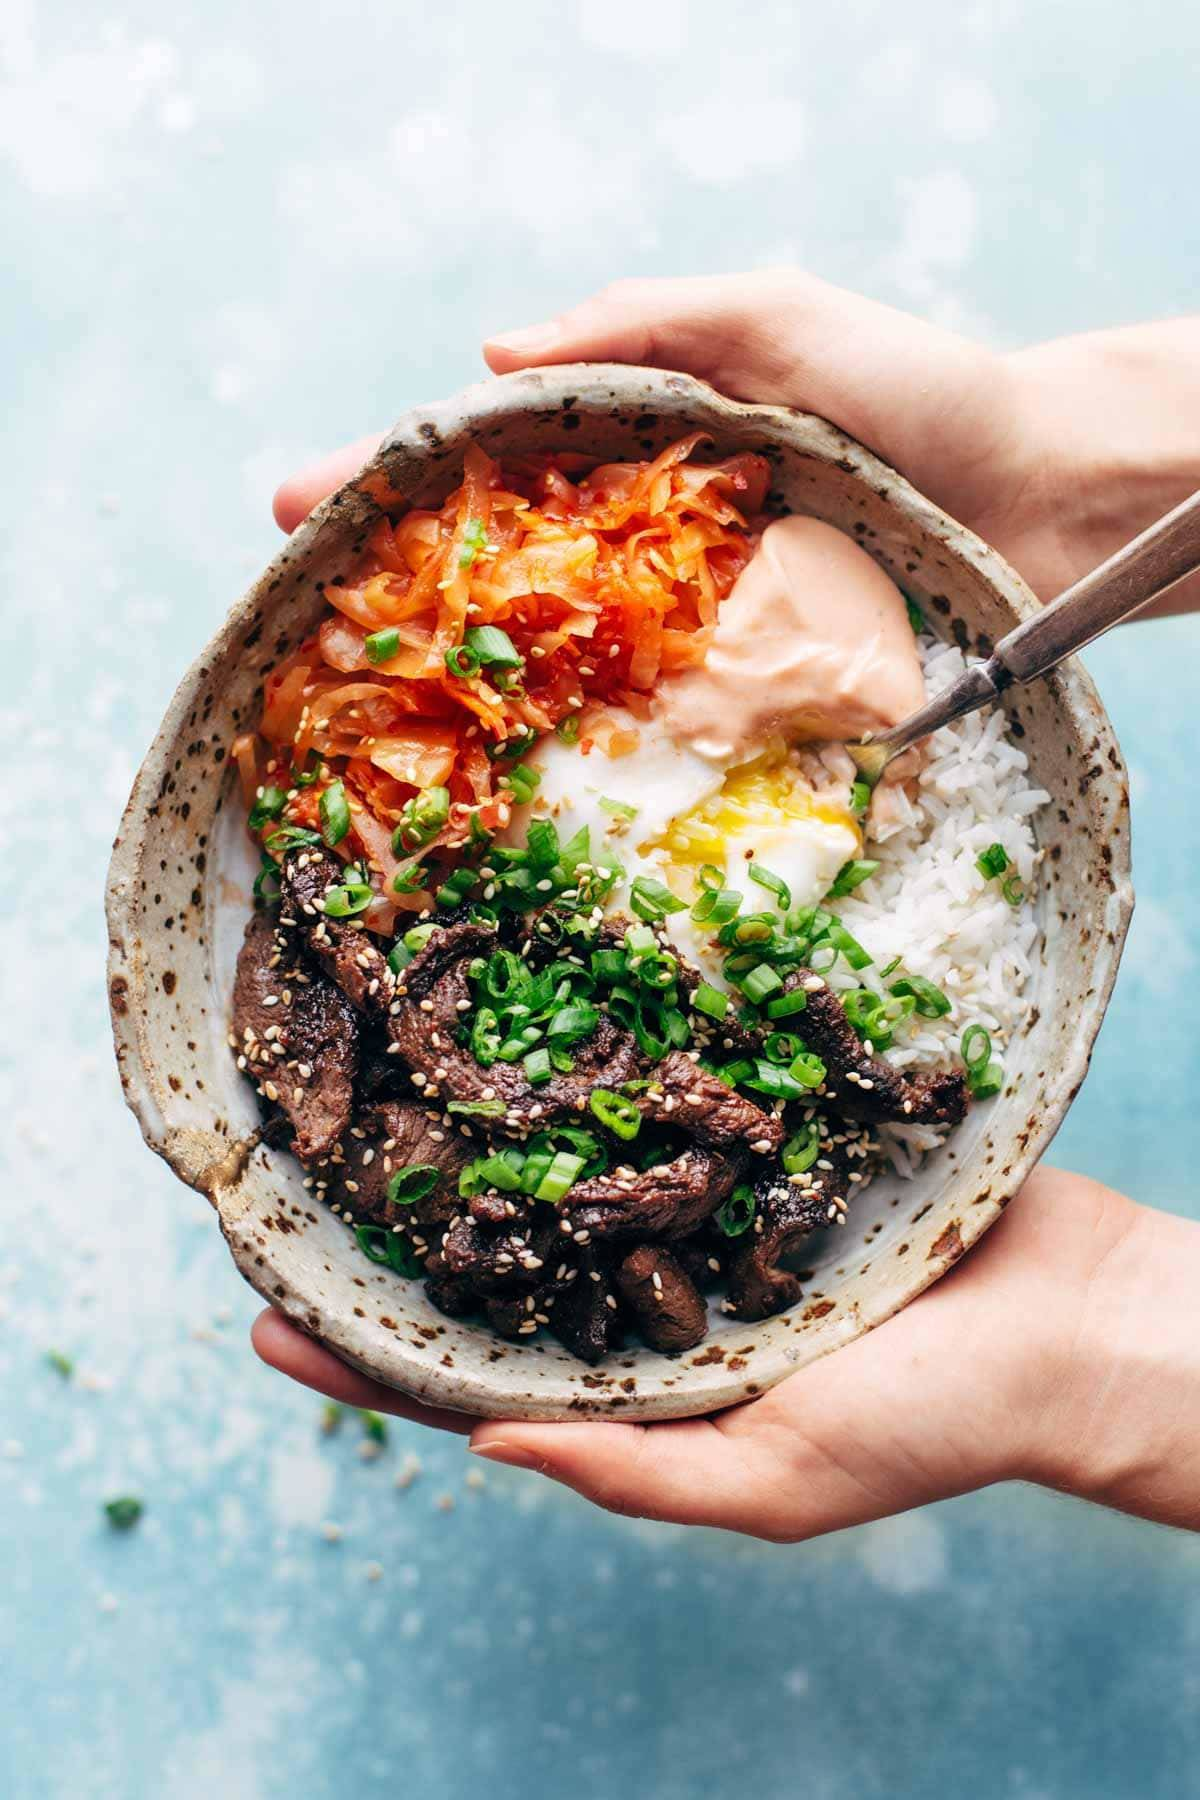 Hands holding a bowl with rice and steak.